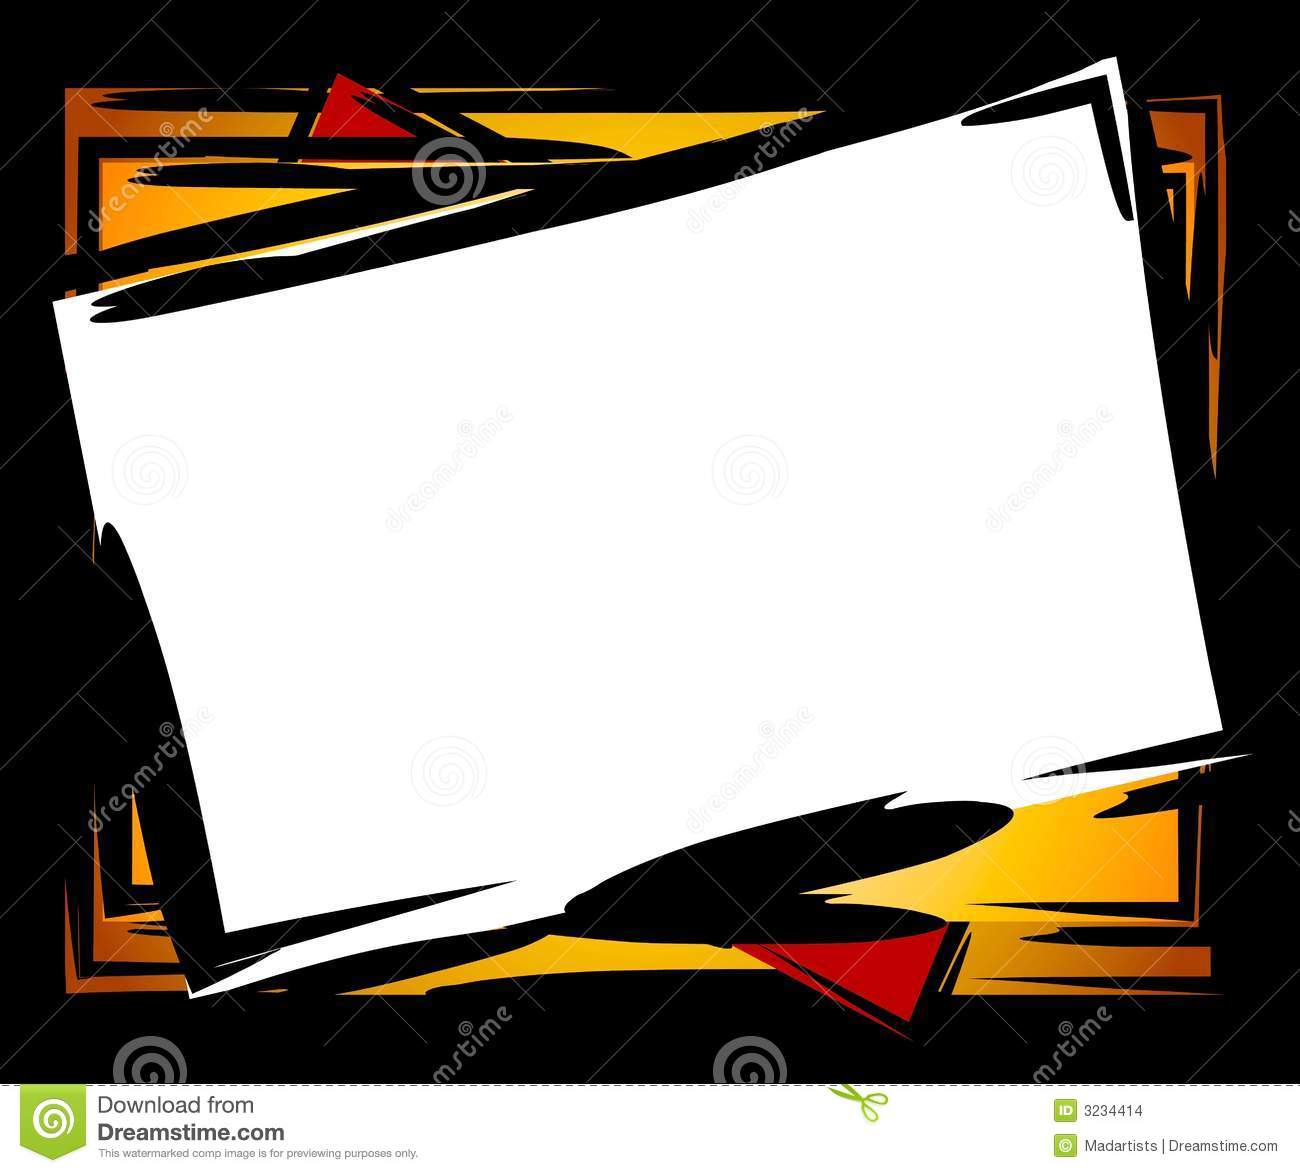 Clip Art Frame Or Border In Chunky Black Outlines Tilted With White